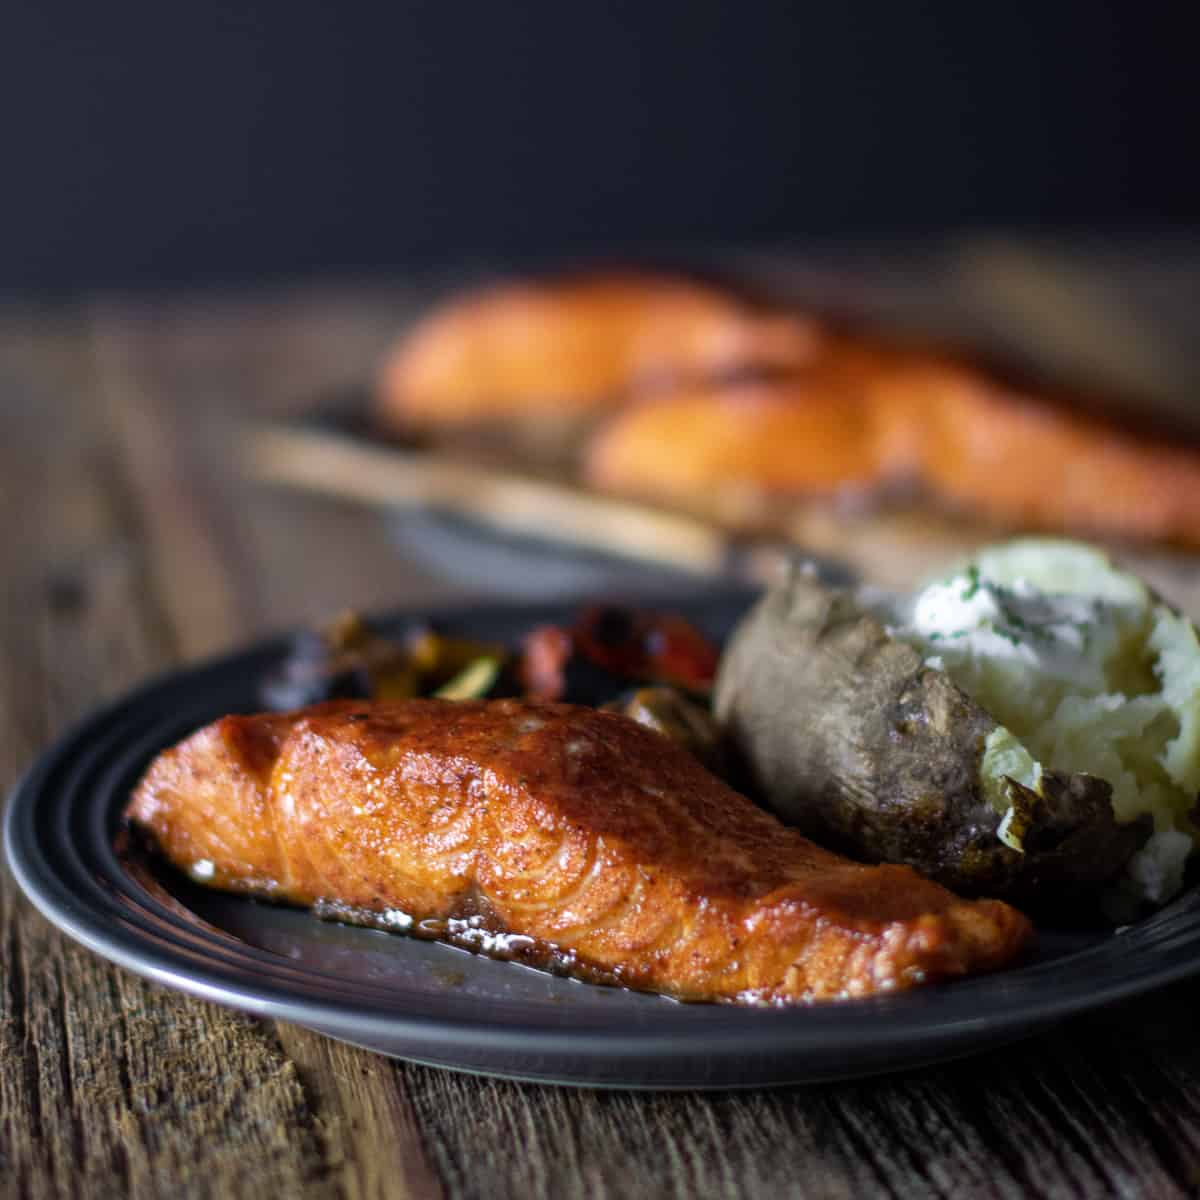 A close up picture of a dinner plate with salmon and baked potato.